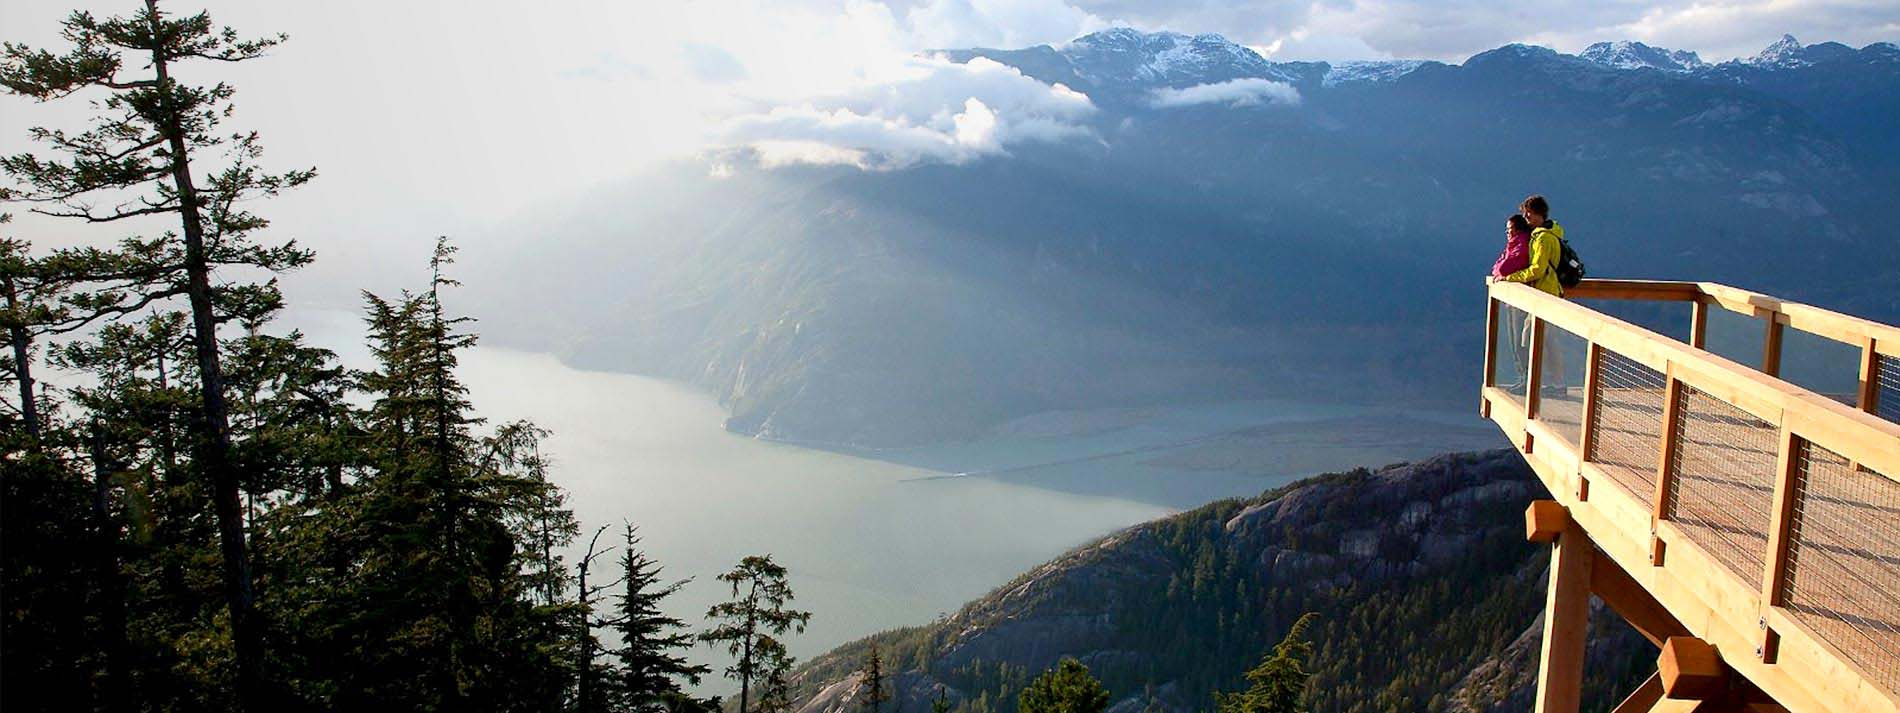 Sea to Sky Gondola in Squamish, BC